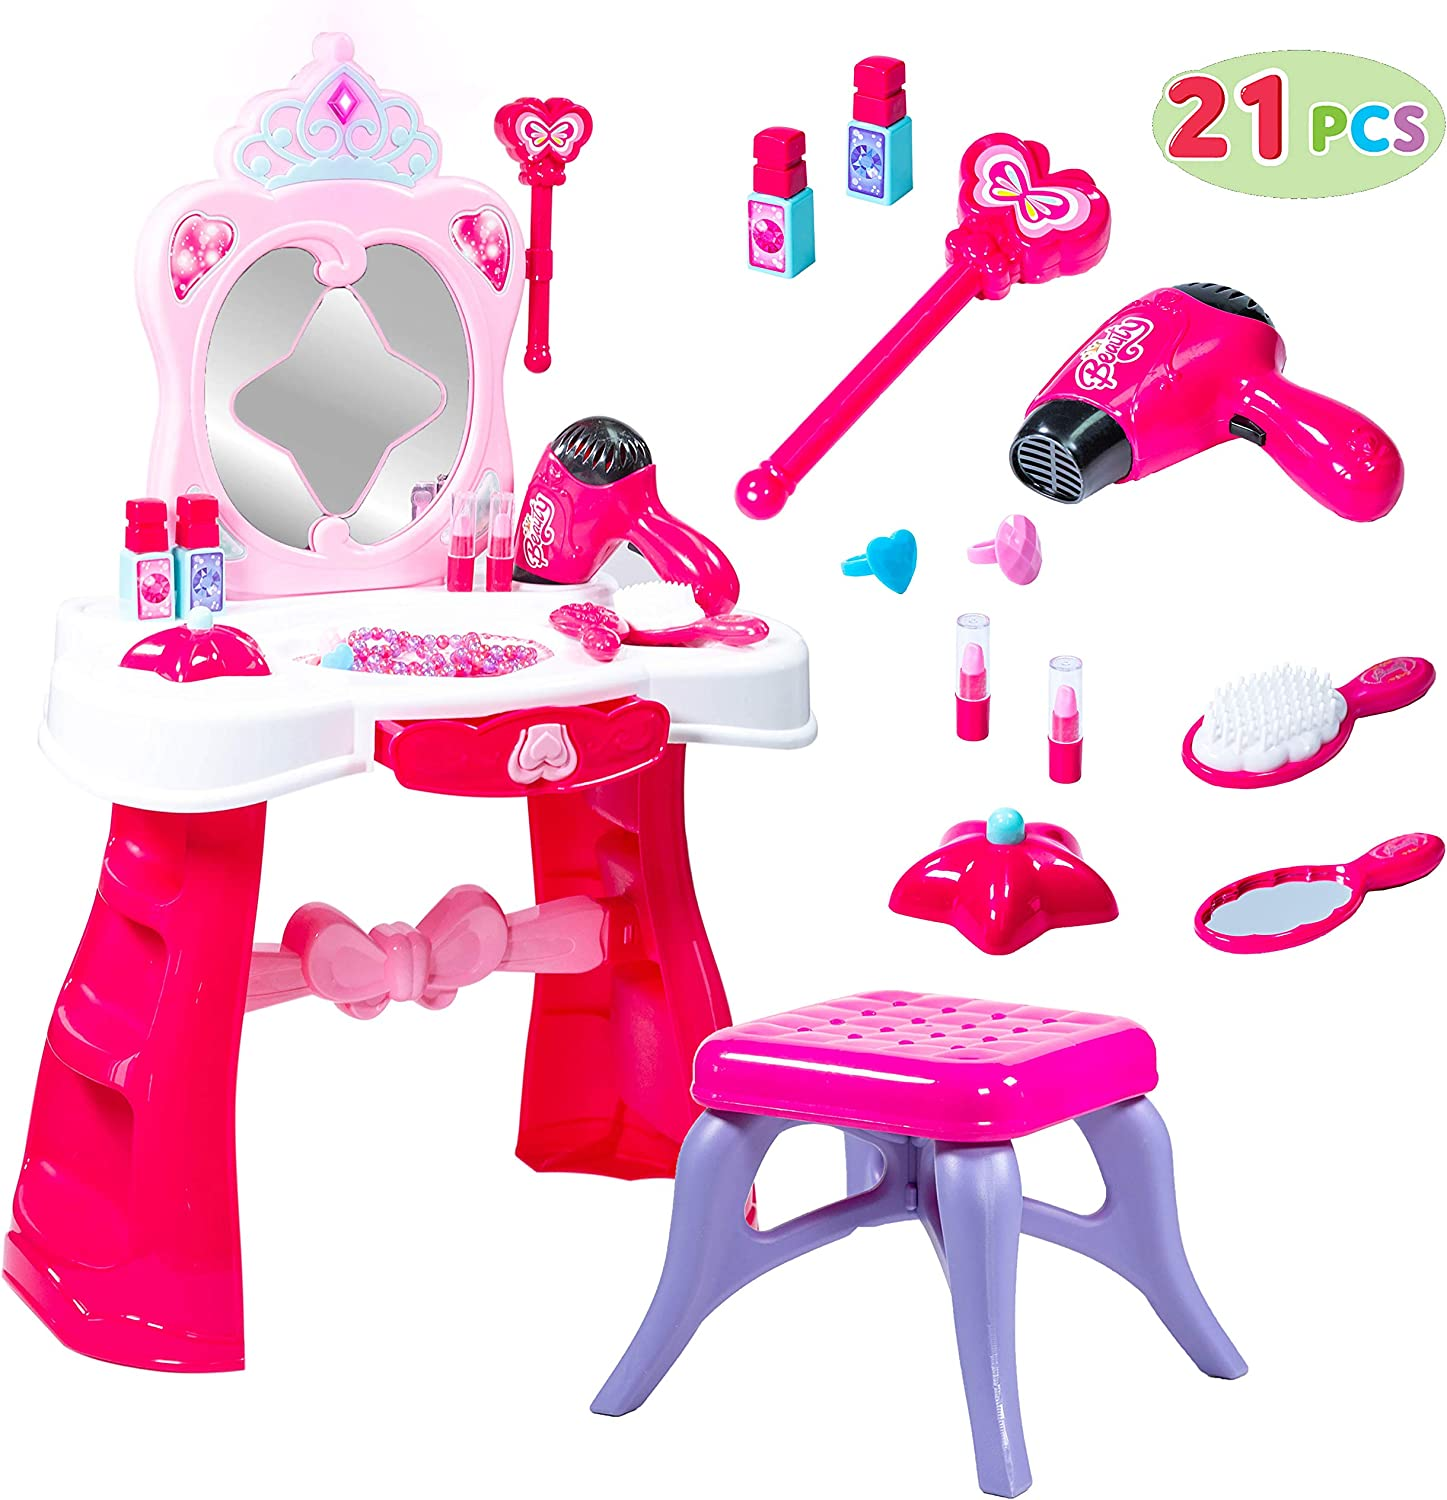 KIDS GIRLS TOP GLAMOUR BEAUTY MIRROR DRESSING TABLE MUSIC /& LIGHT PLAY TOY SET